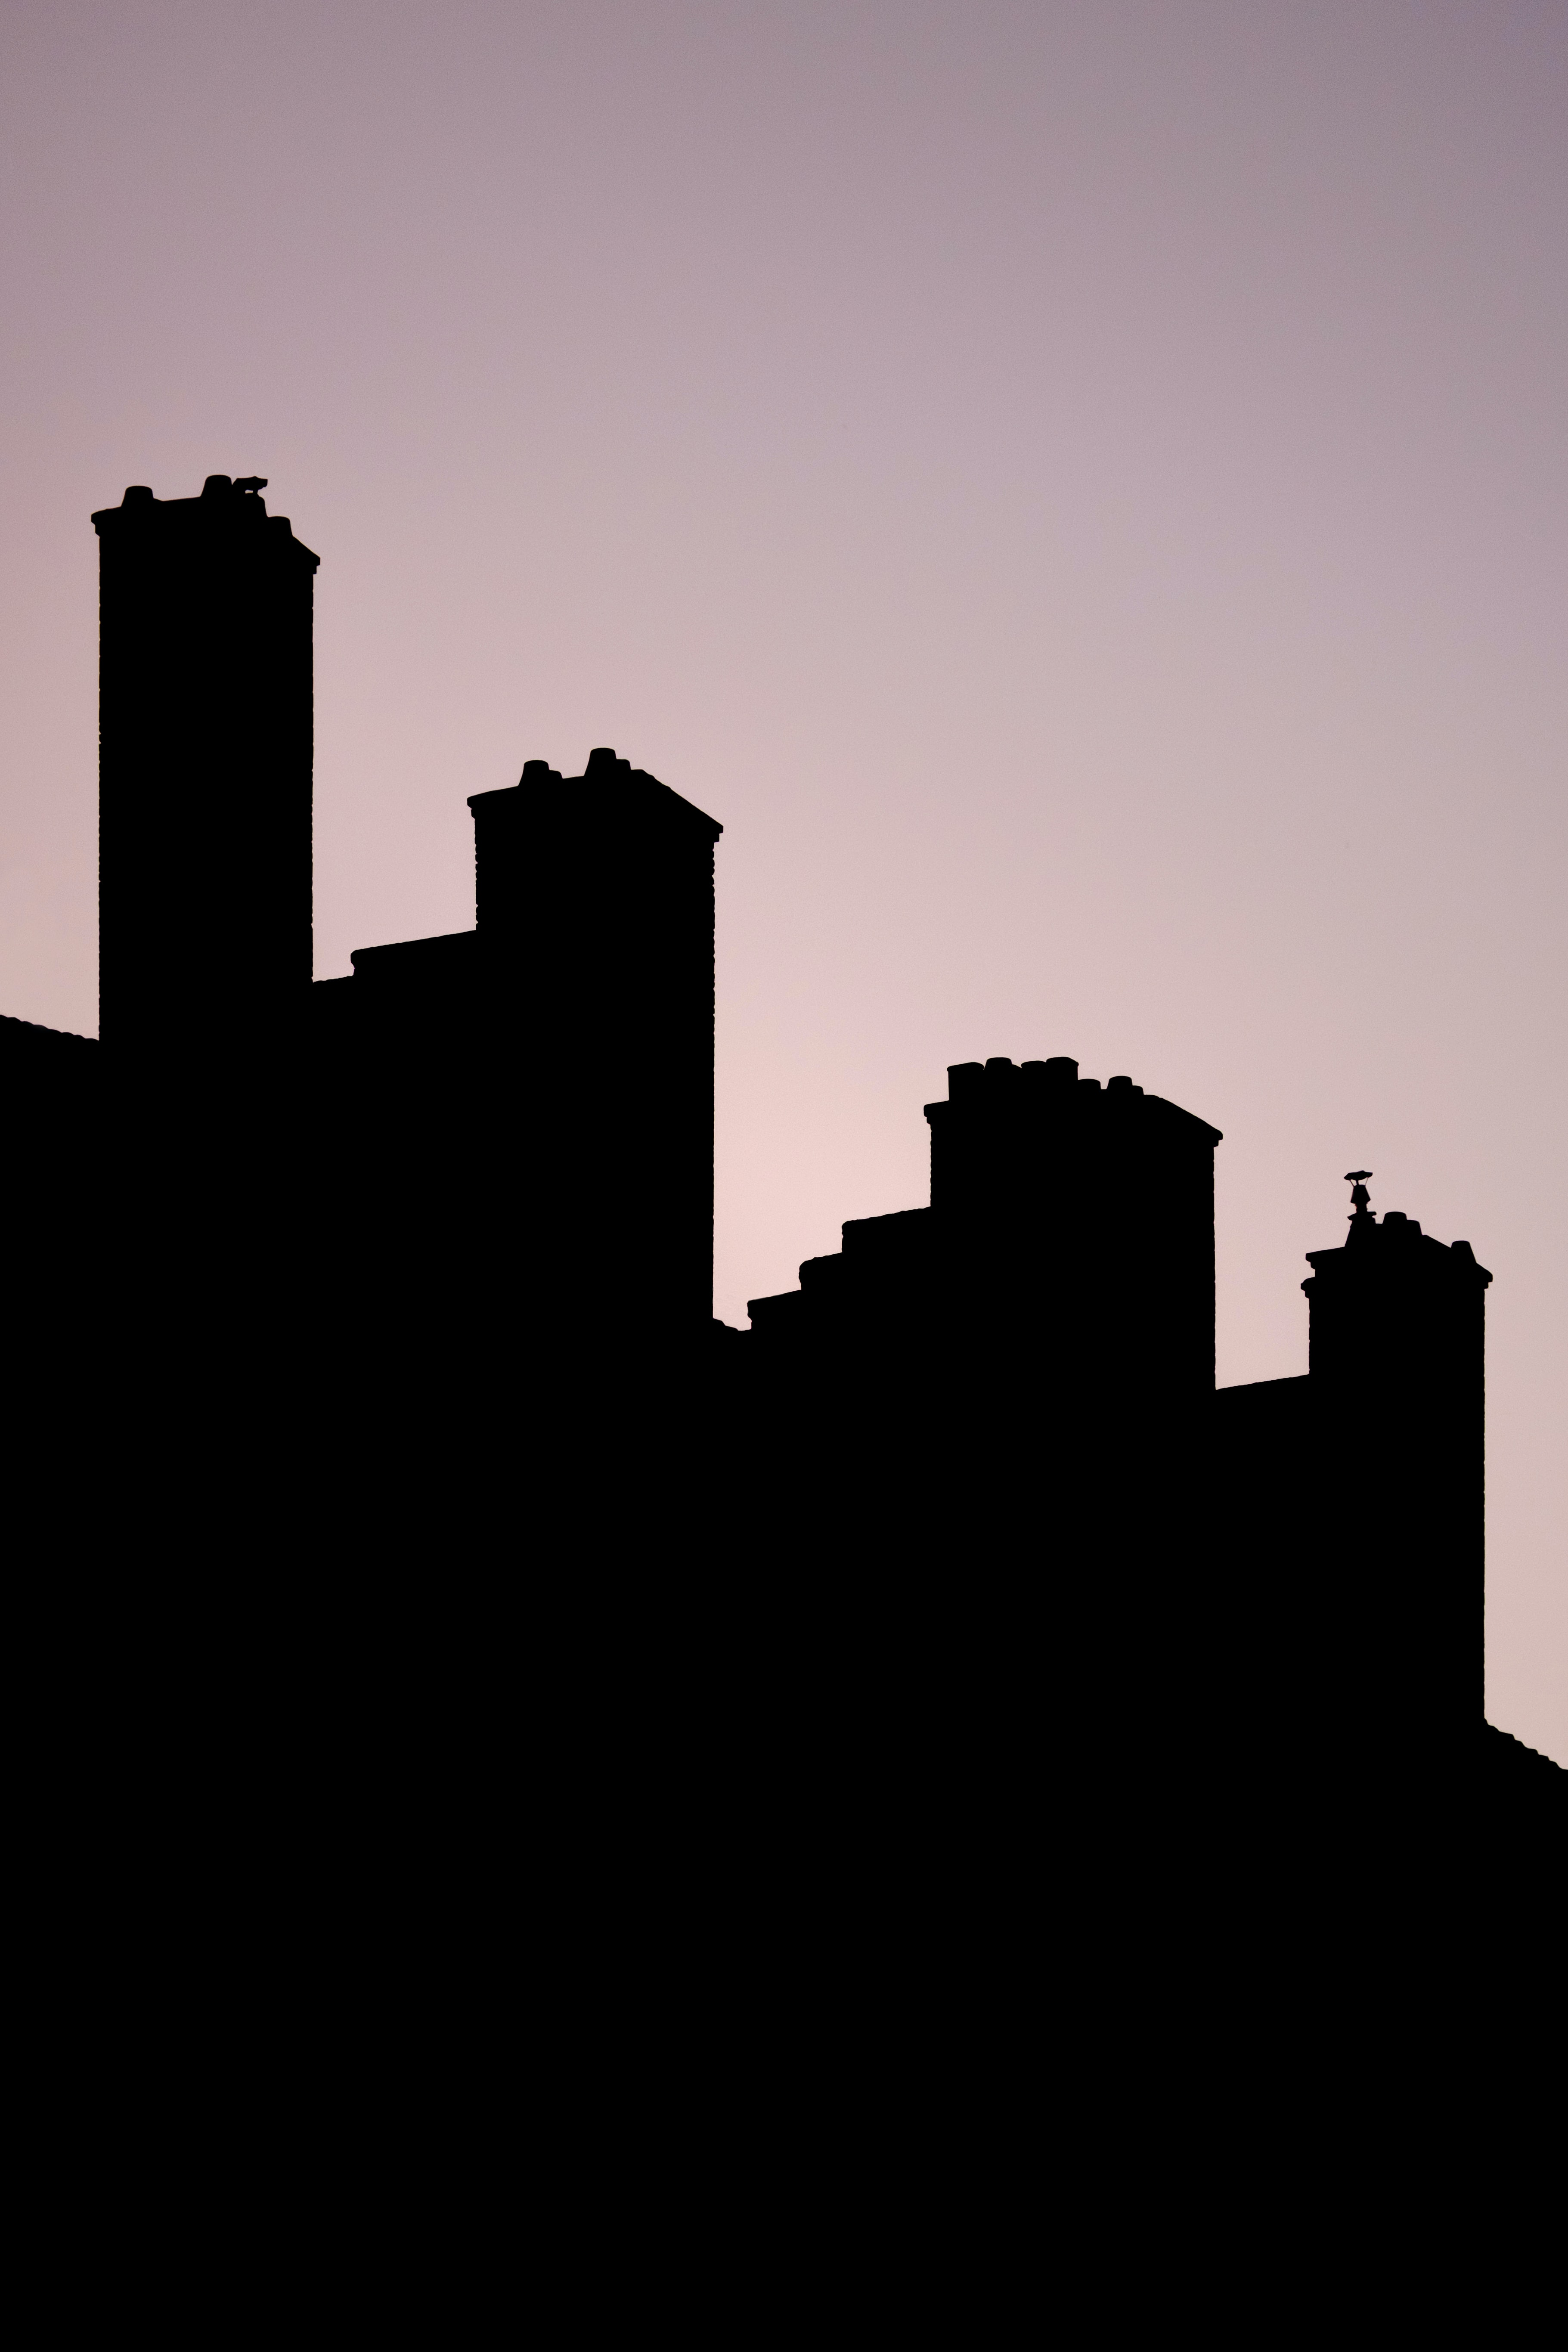 silhouette of chimneys